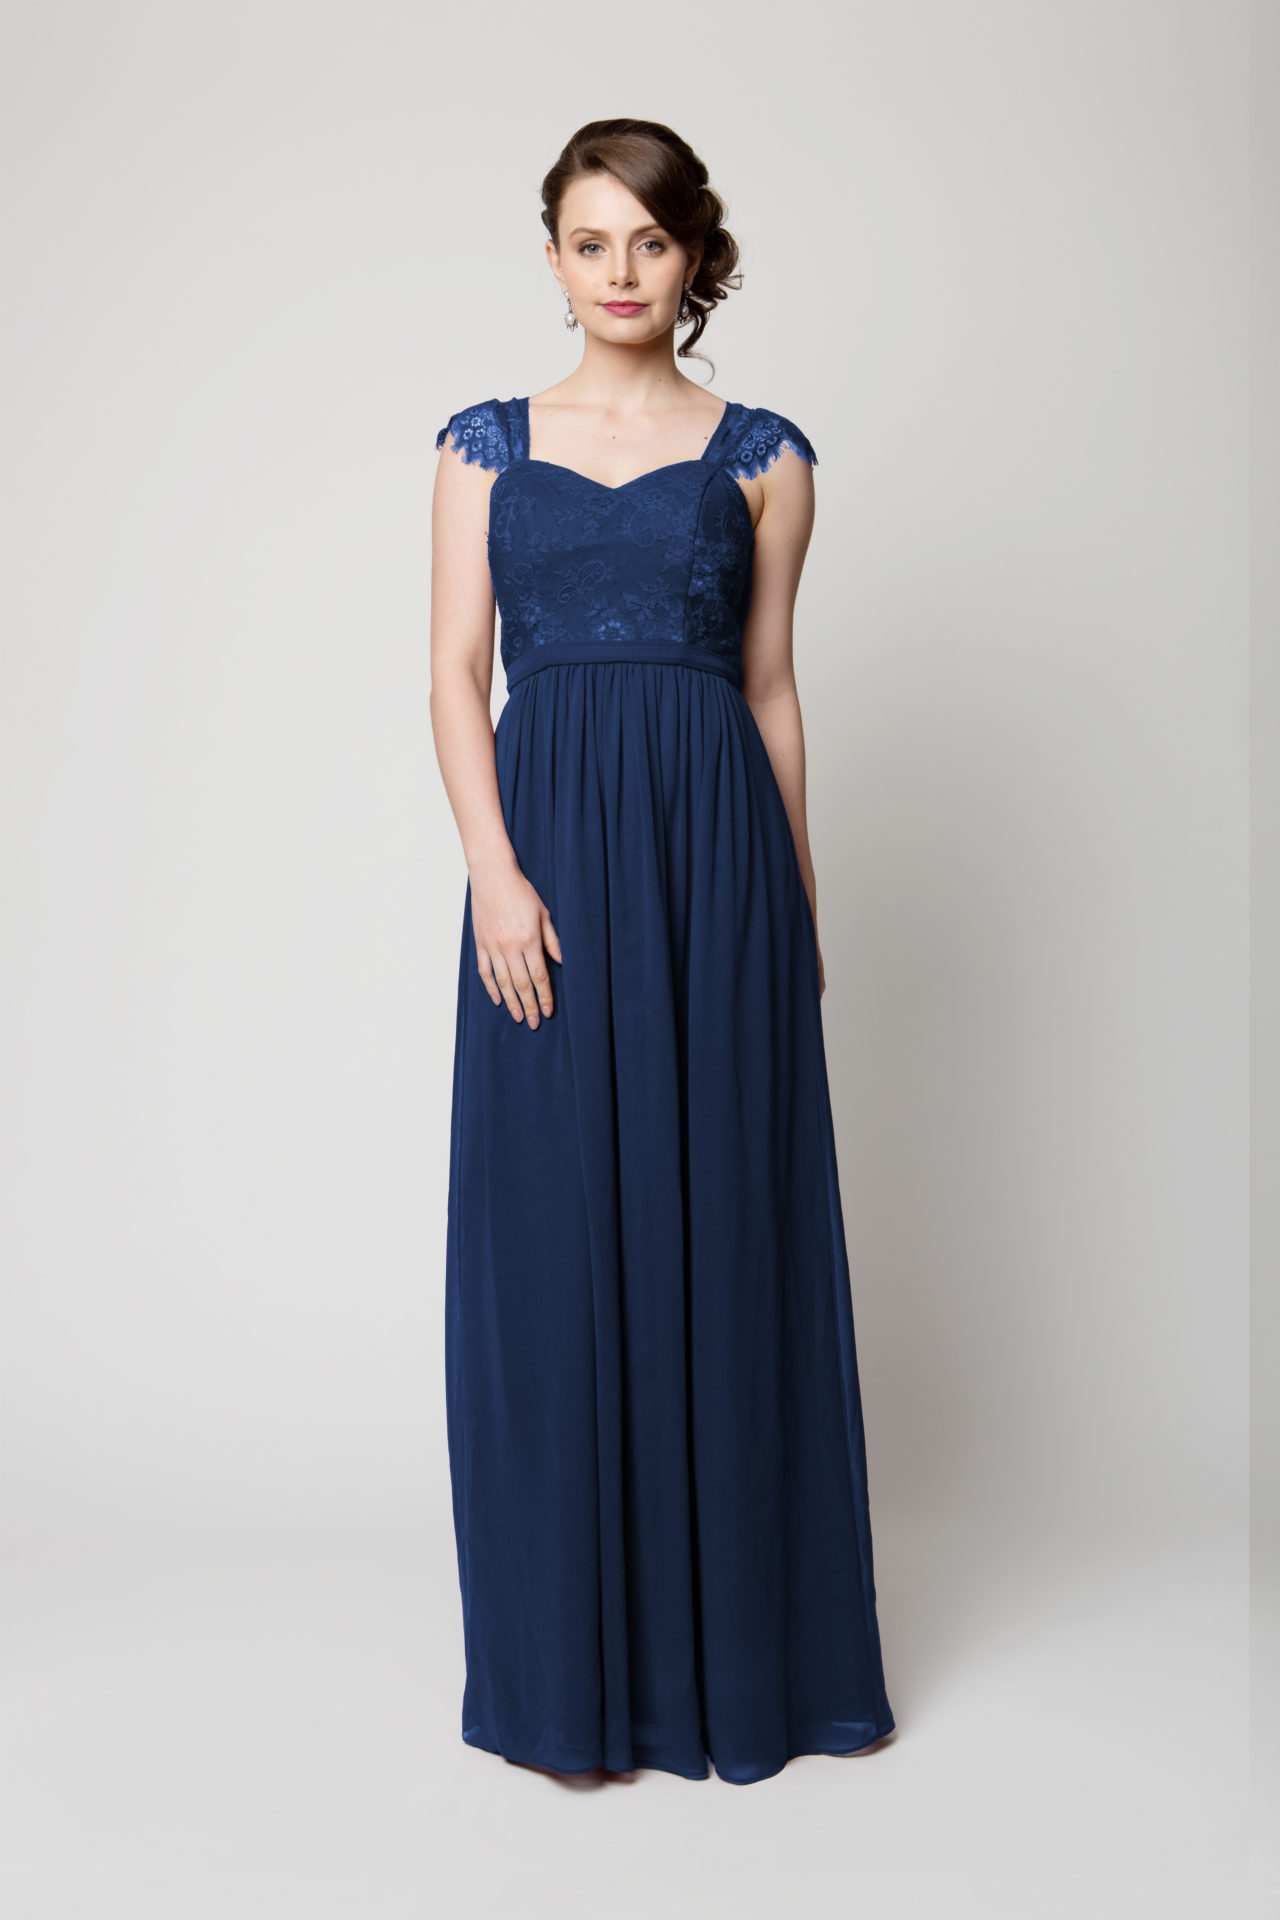 TO57 PHOEBE NAVY FRONT